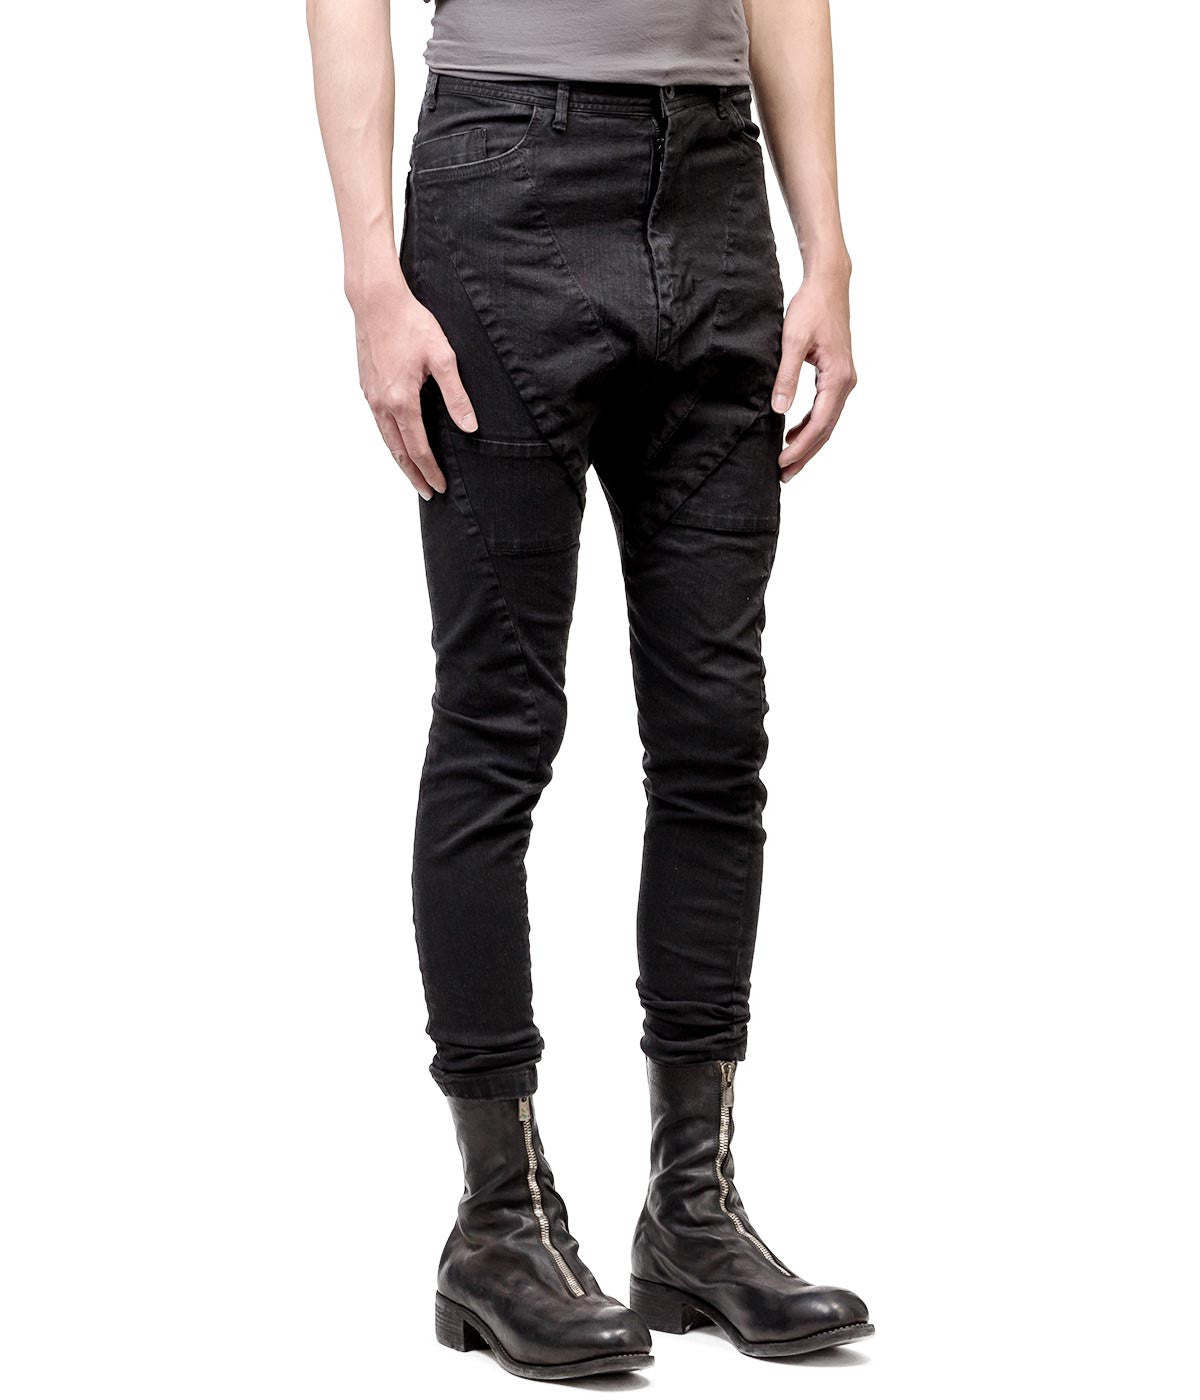 Black Distressed Drop Crotch Jeans